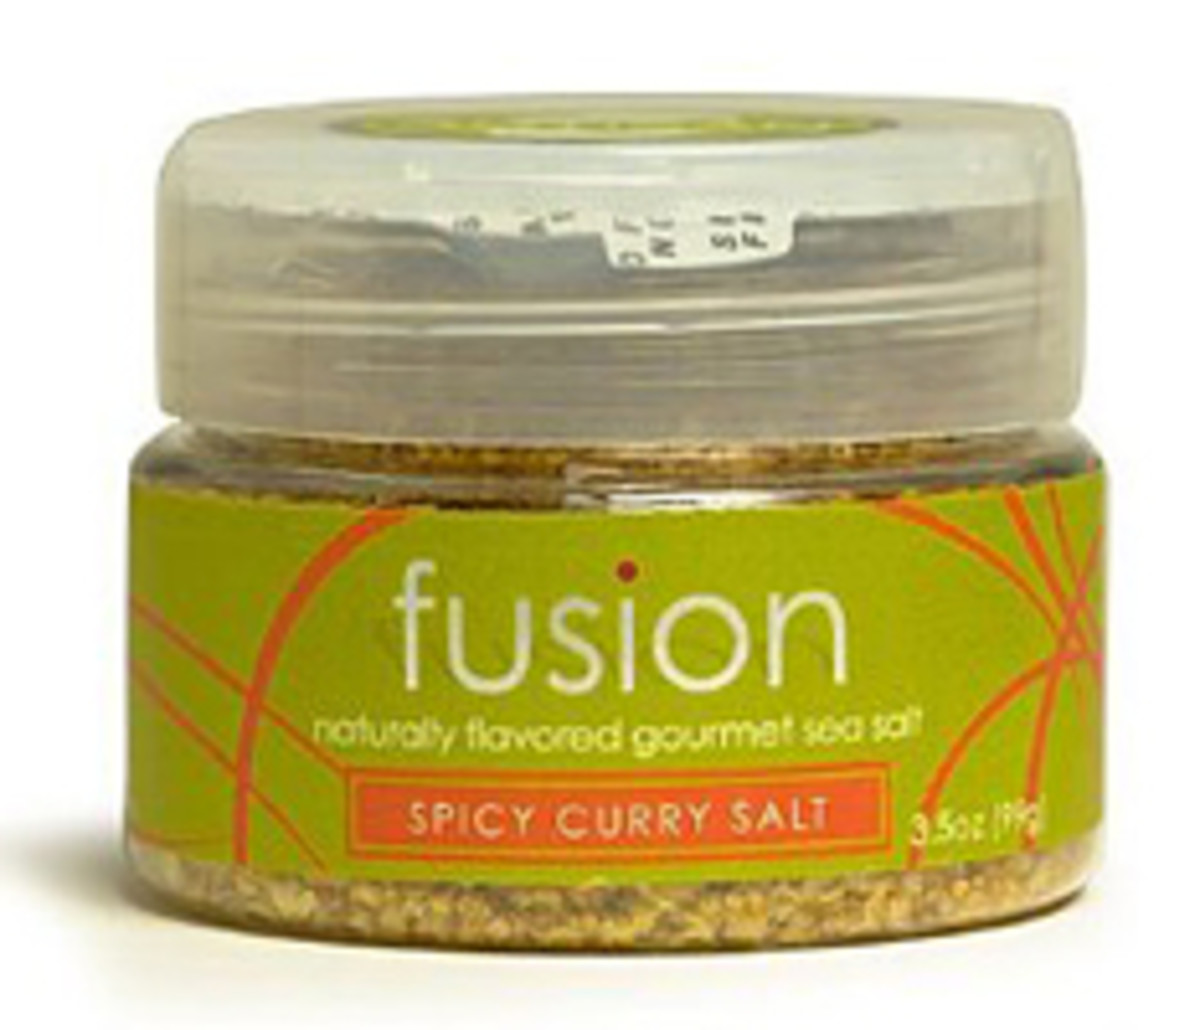 fusion-curry-salt3